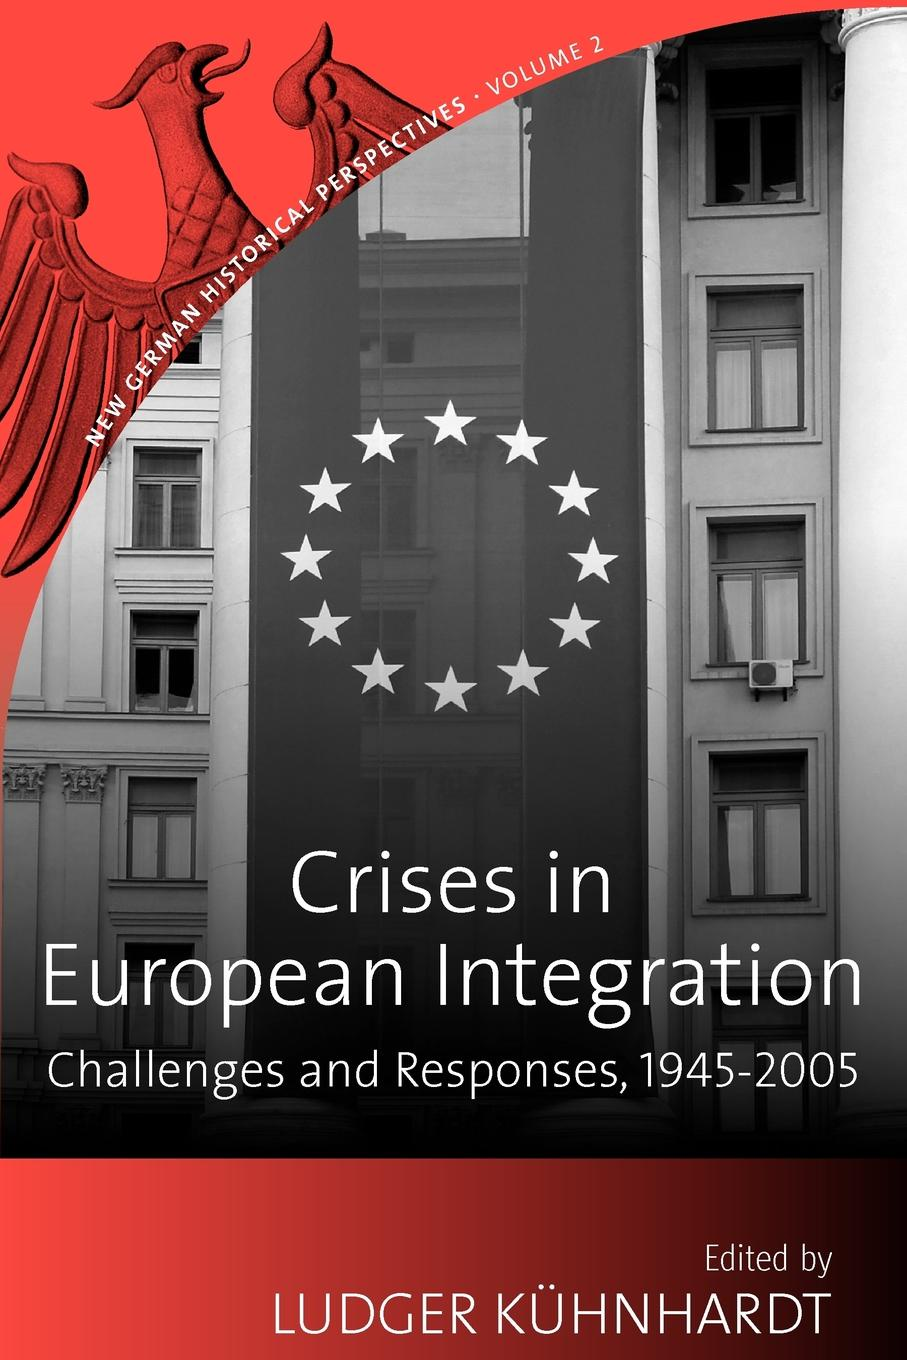 Crises in European Integration. Challenges and Responses, 1945-2005 a micro level analysis of the effects of multiple crises